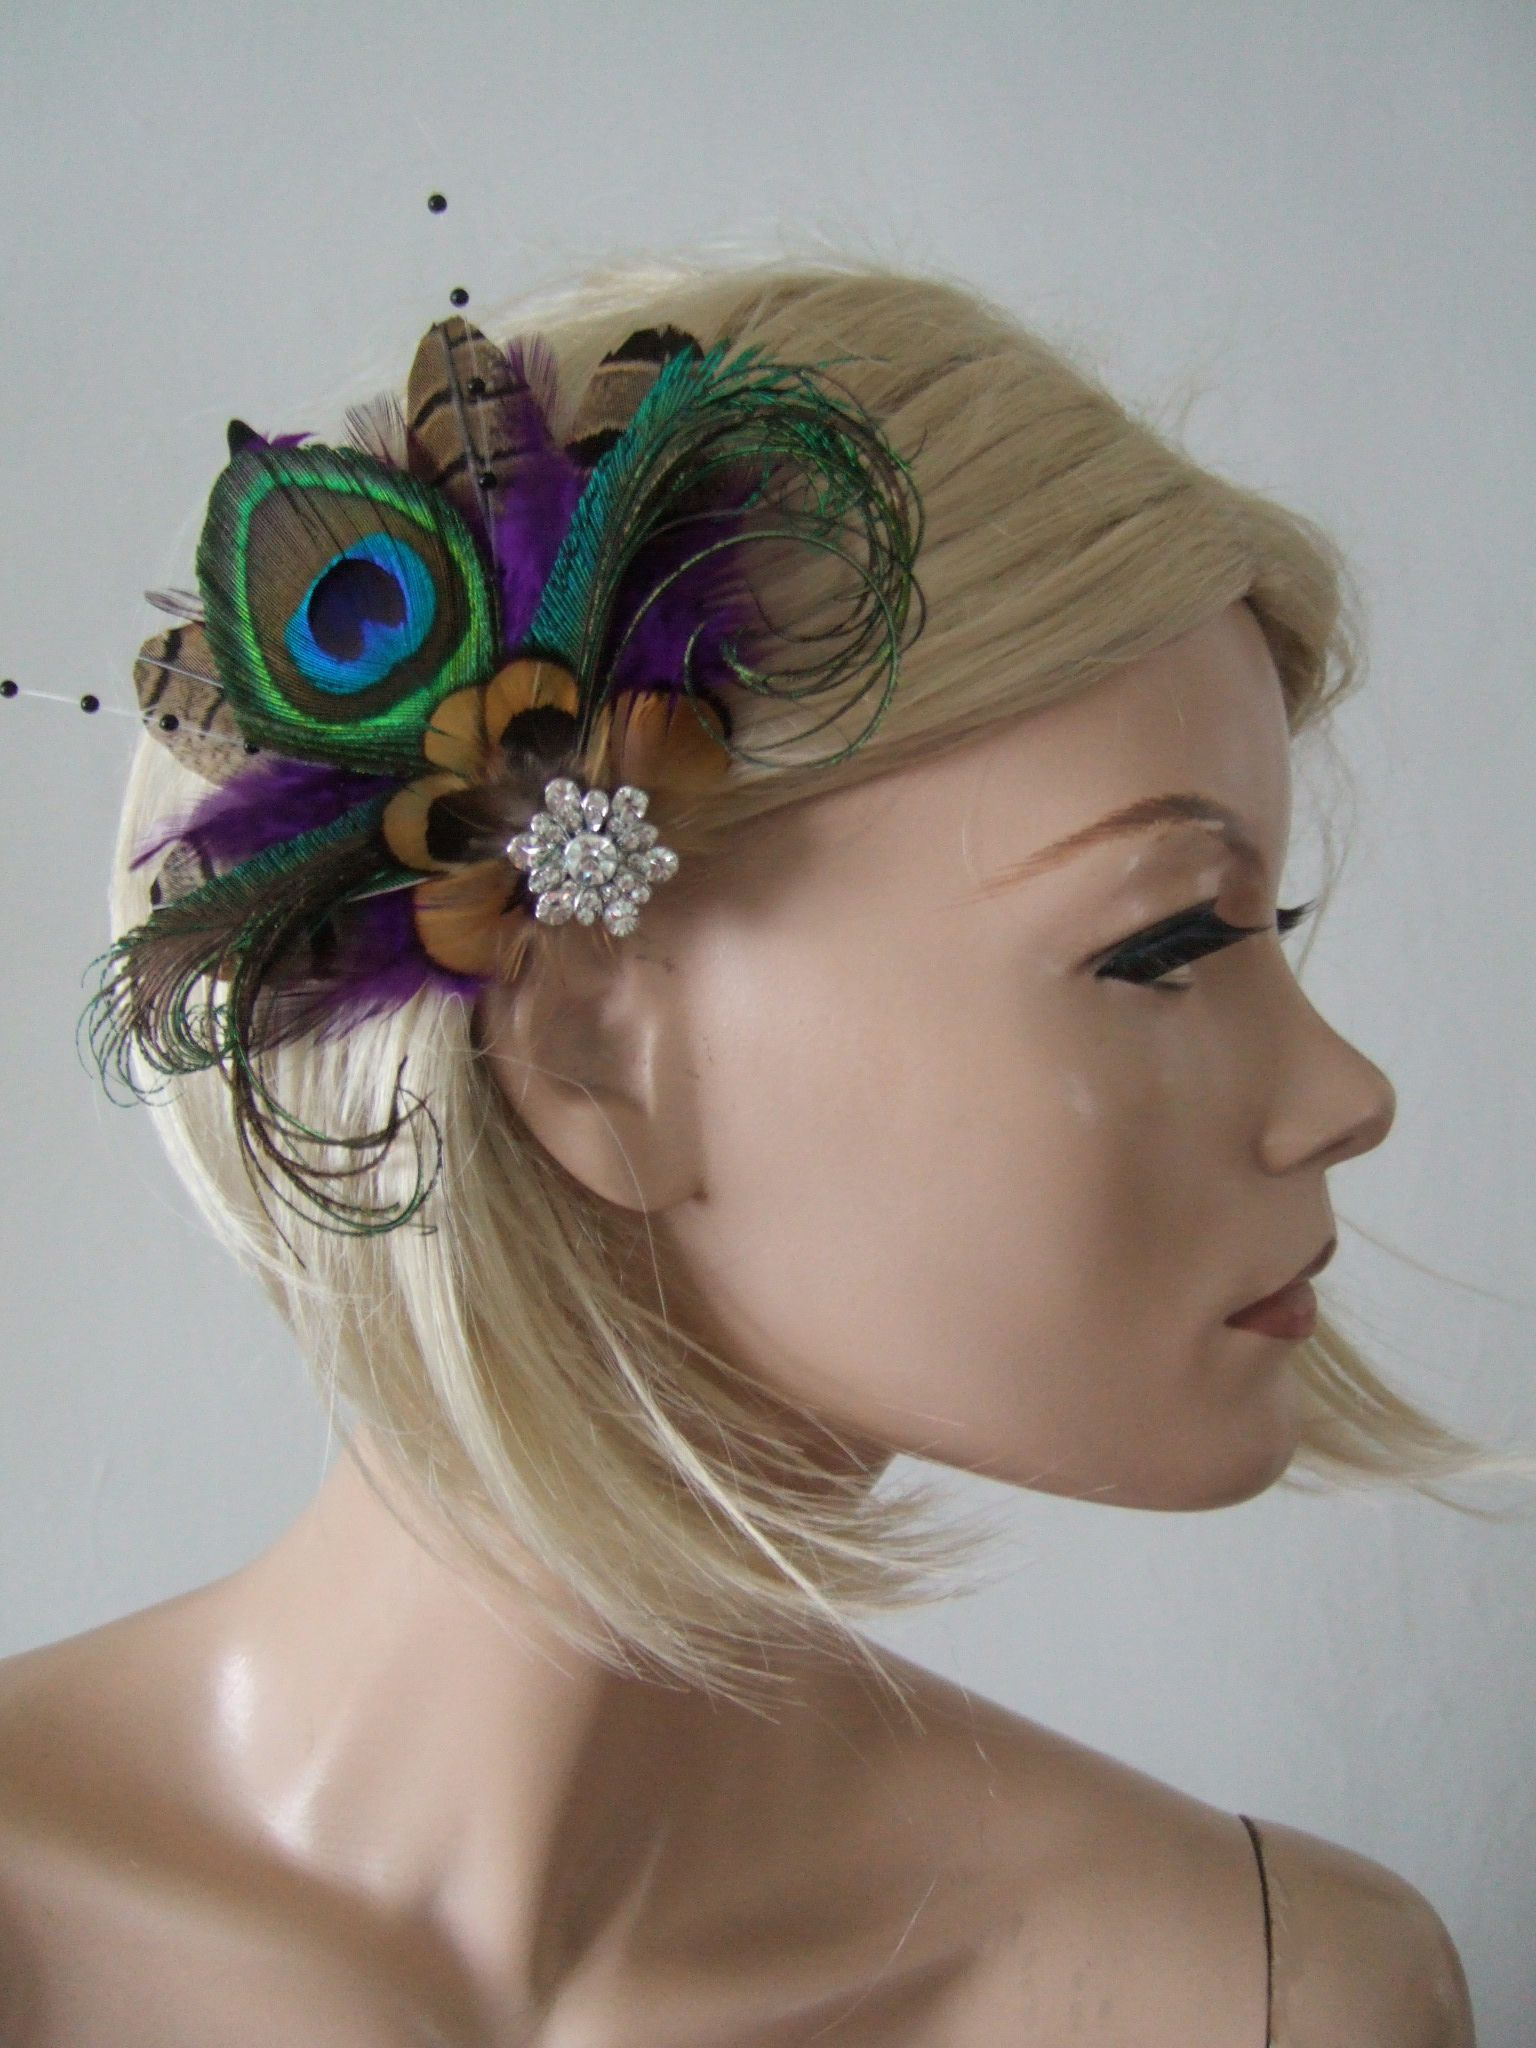 ... Purple Brown Green Peacock Pheasant Feathers Fascinator Hair Clip